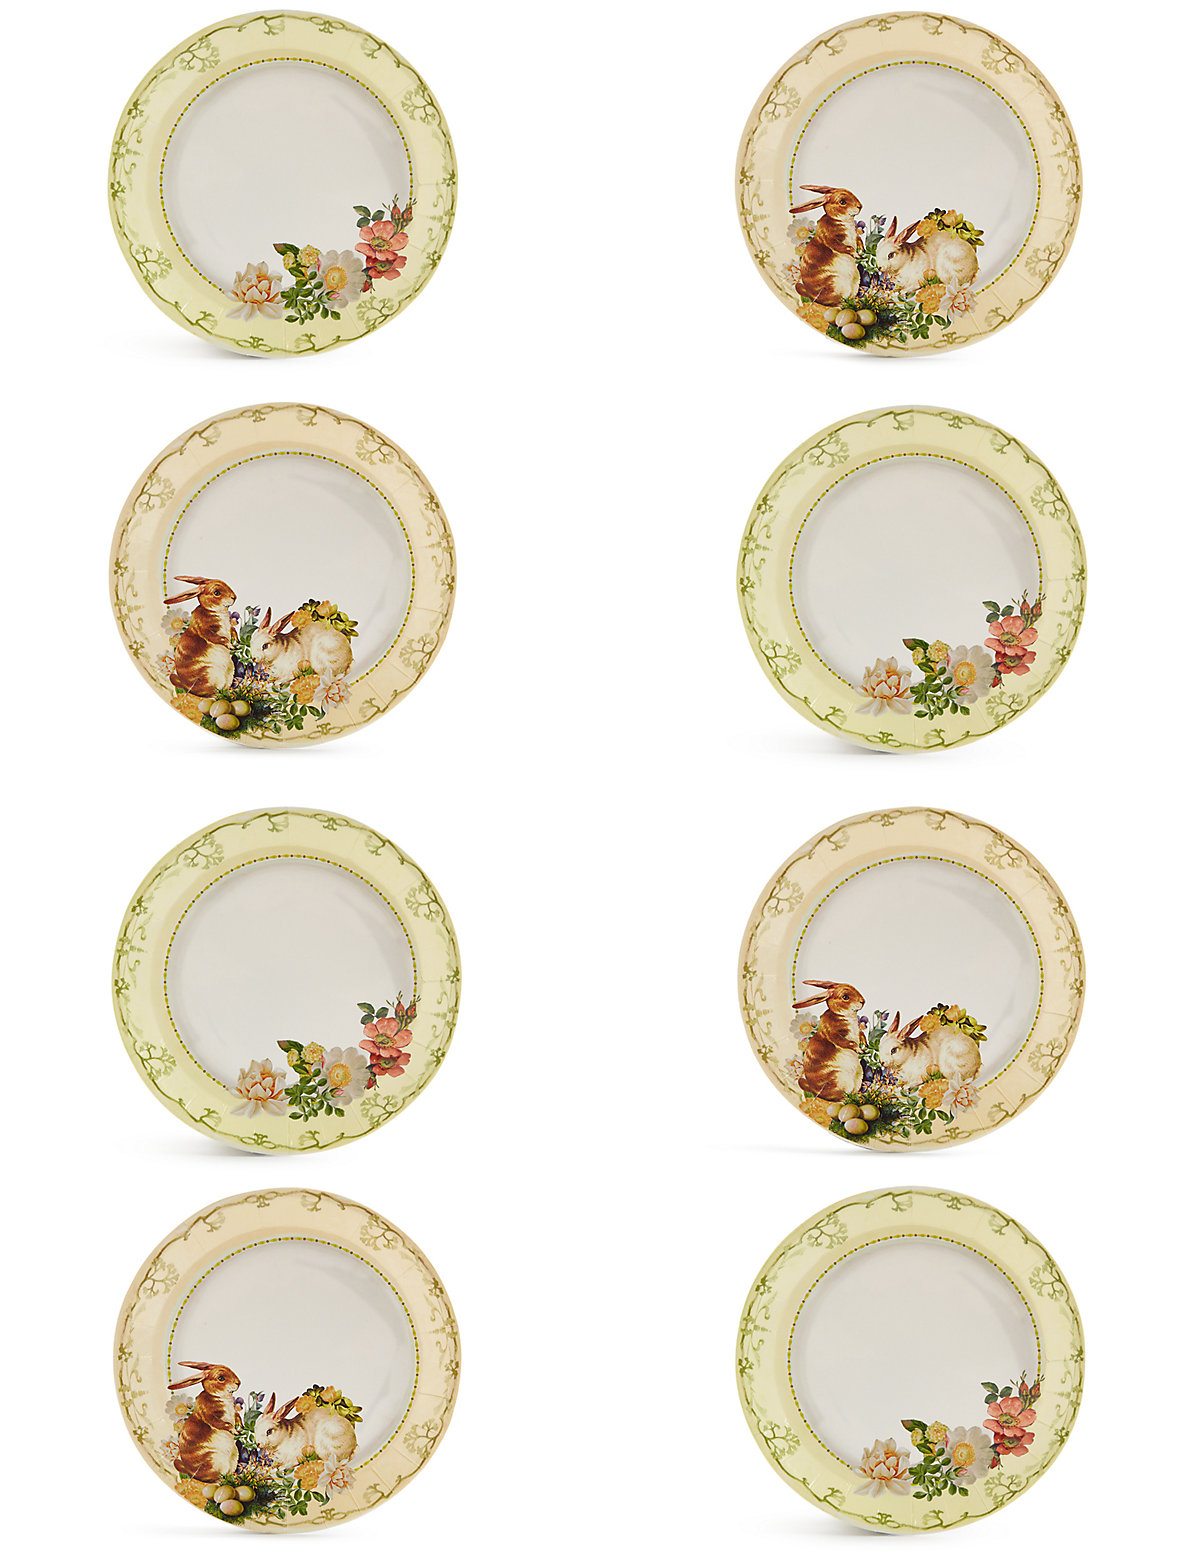 Marks and spencer canap plates for What are canape plates